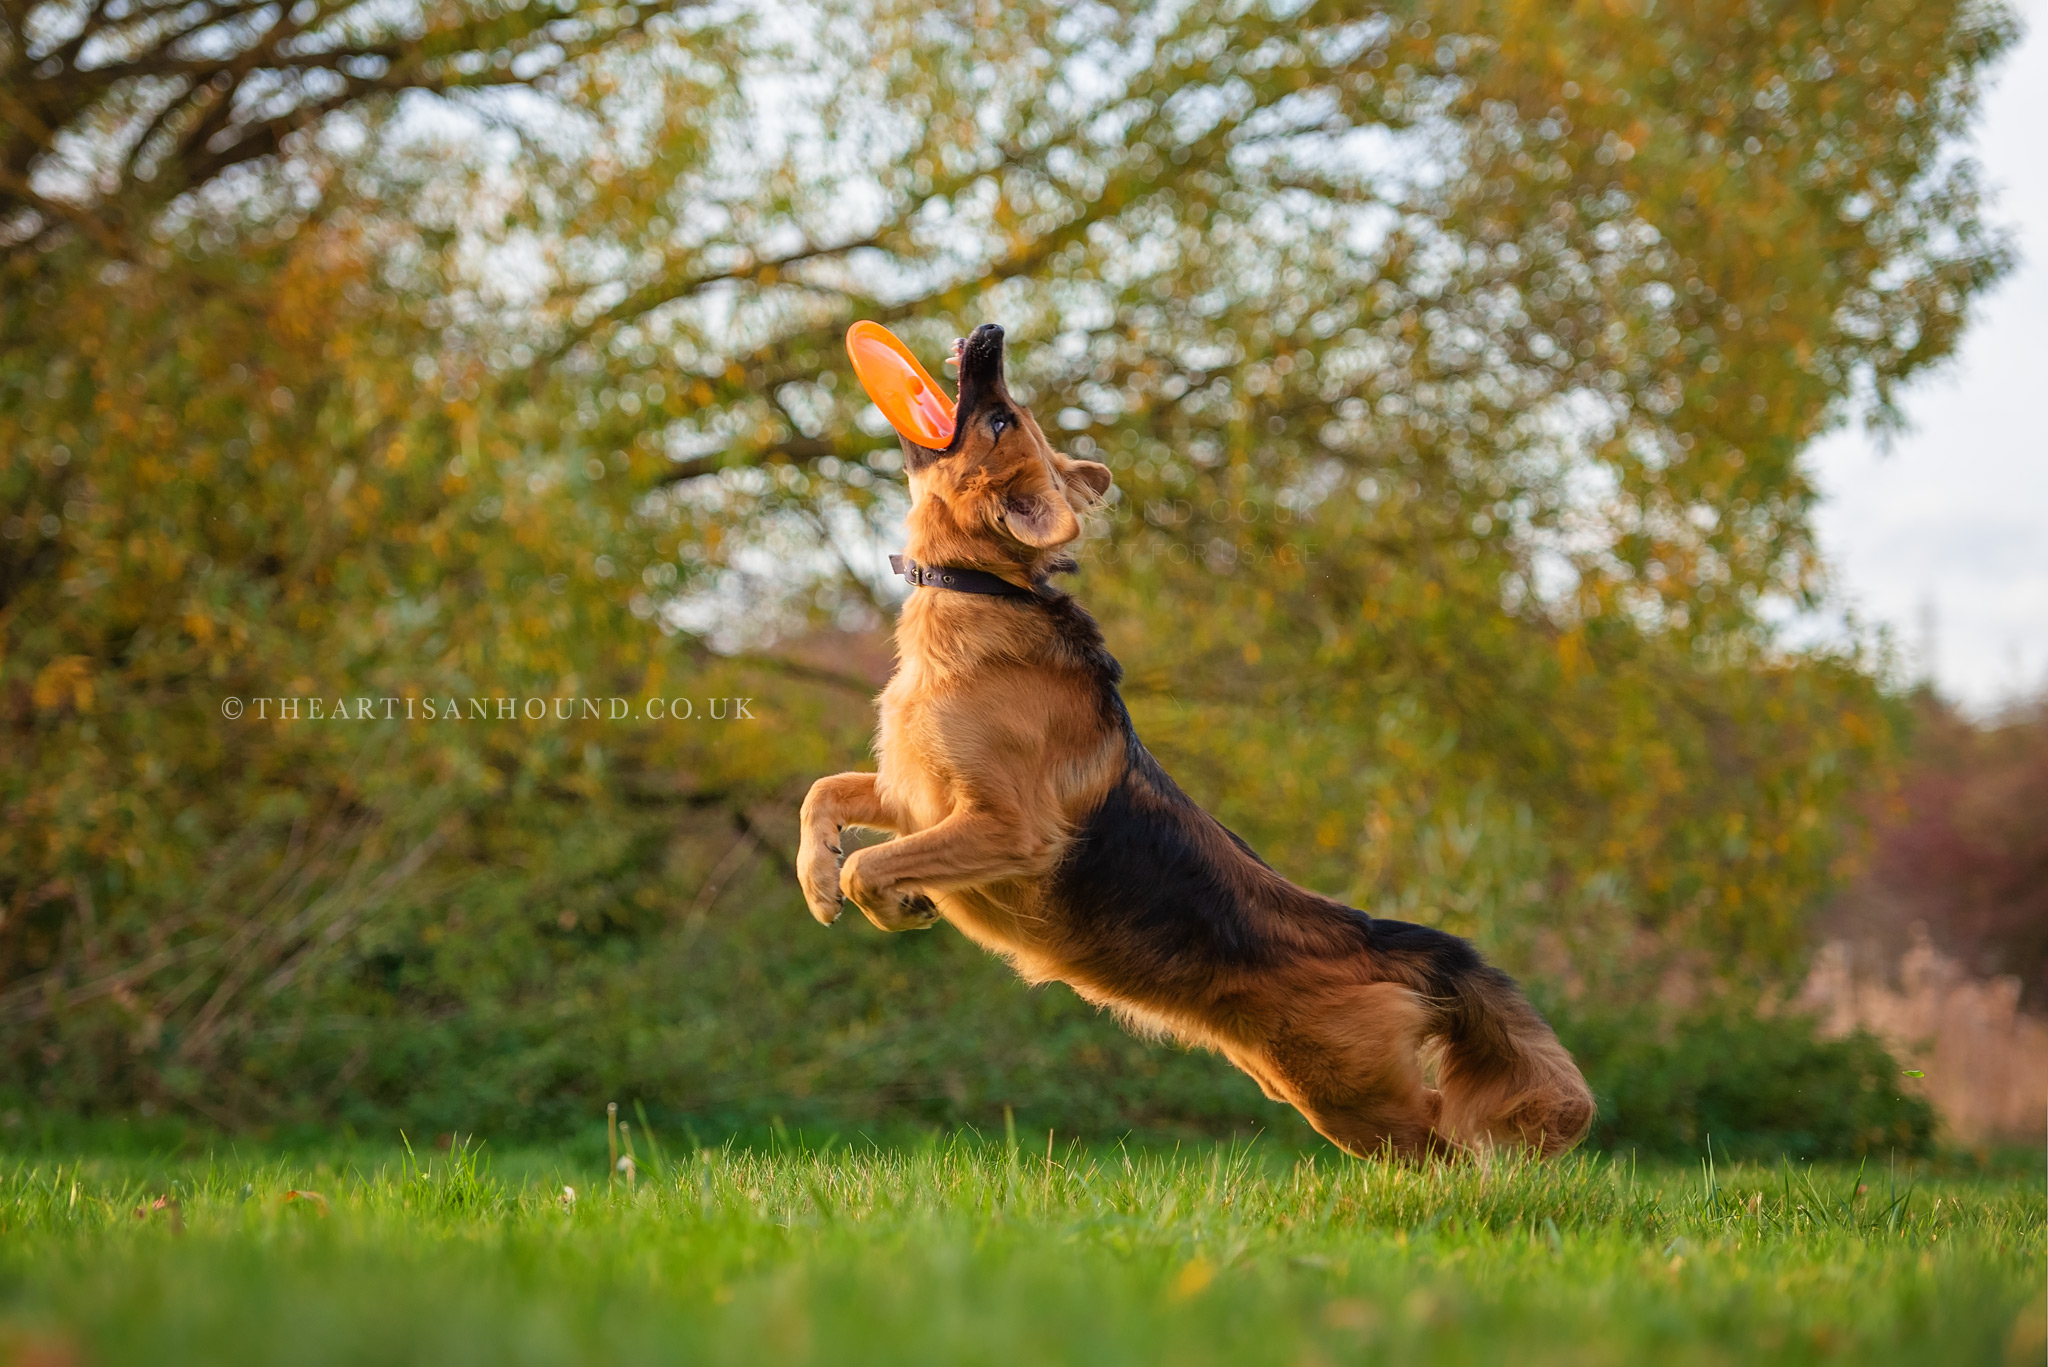 Large dog catching frisbee in mid air